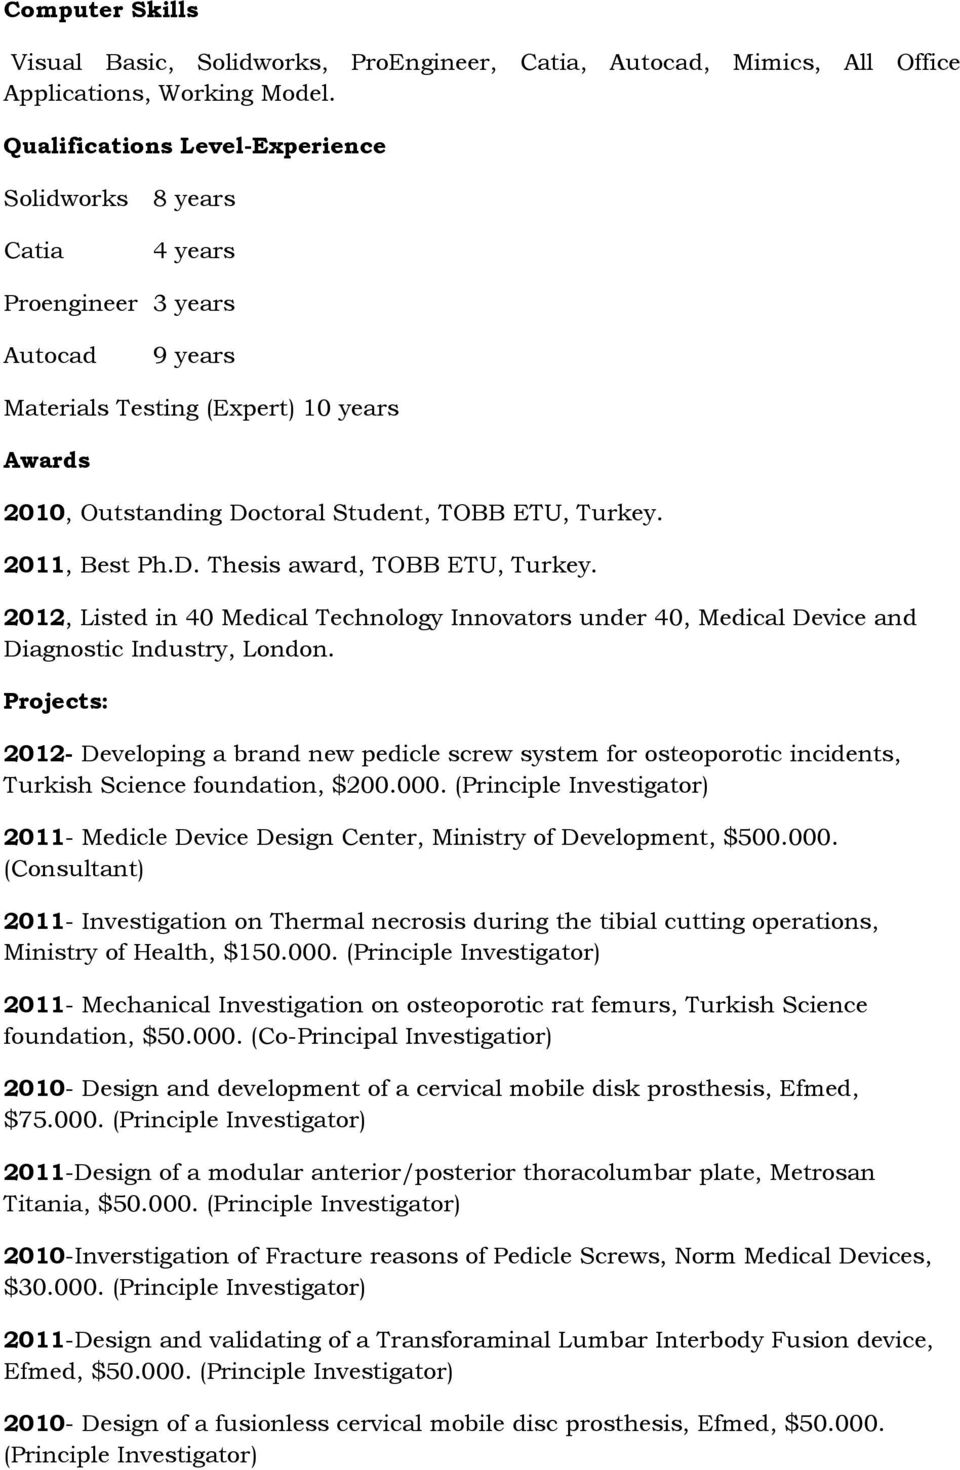 2011, Best Ph.D. Thesis award, TOBB ETU, Turkey. 2012, Listed in 40 Medical Technology Innovators under 40, Medical Device and Diagnostic Industry, London.